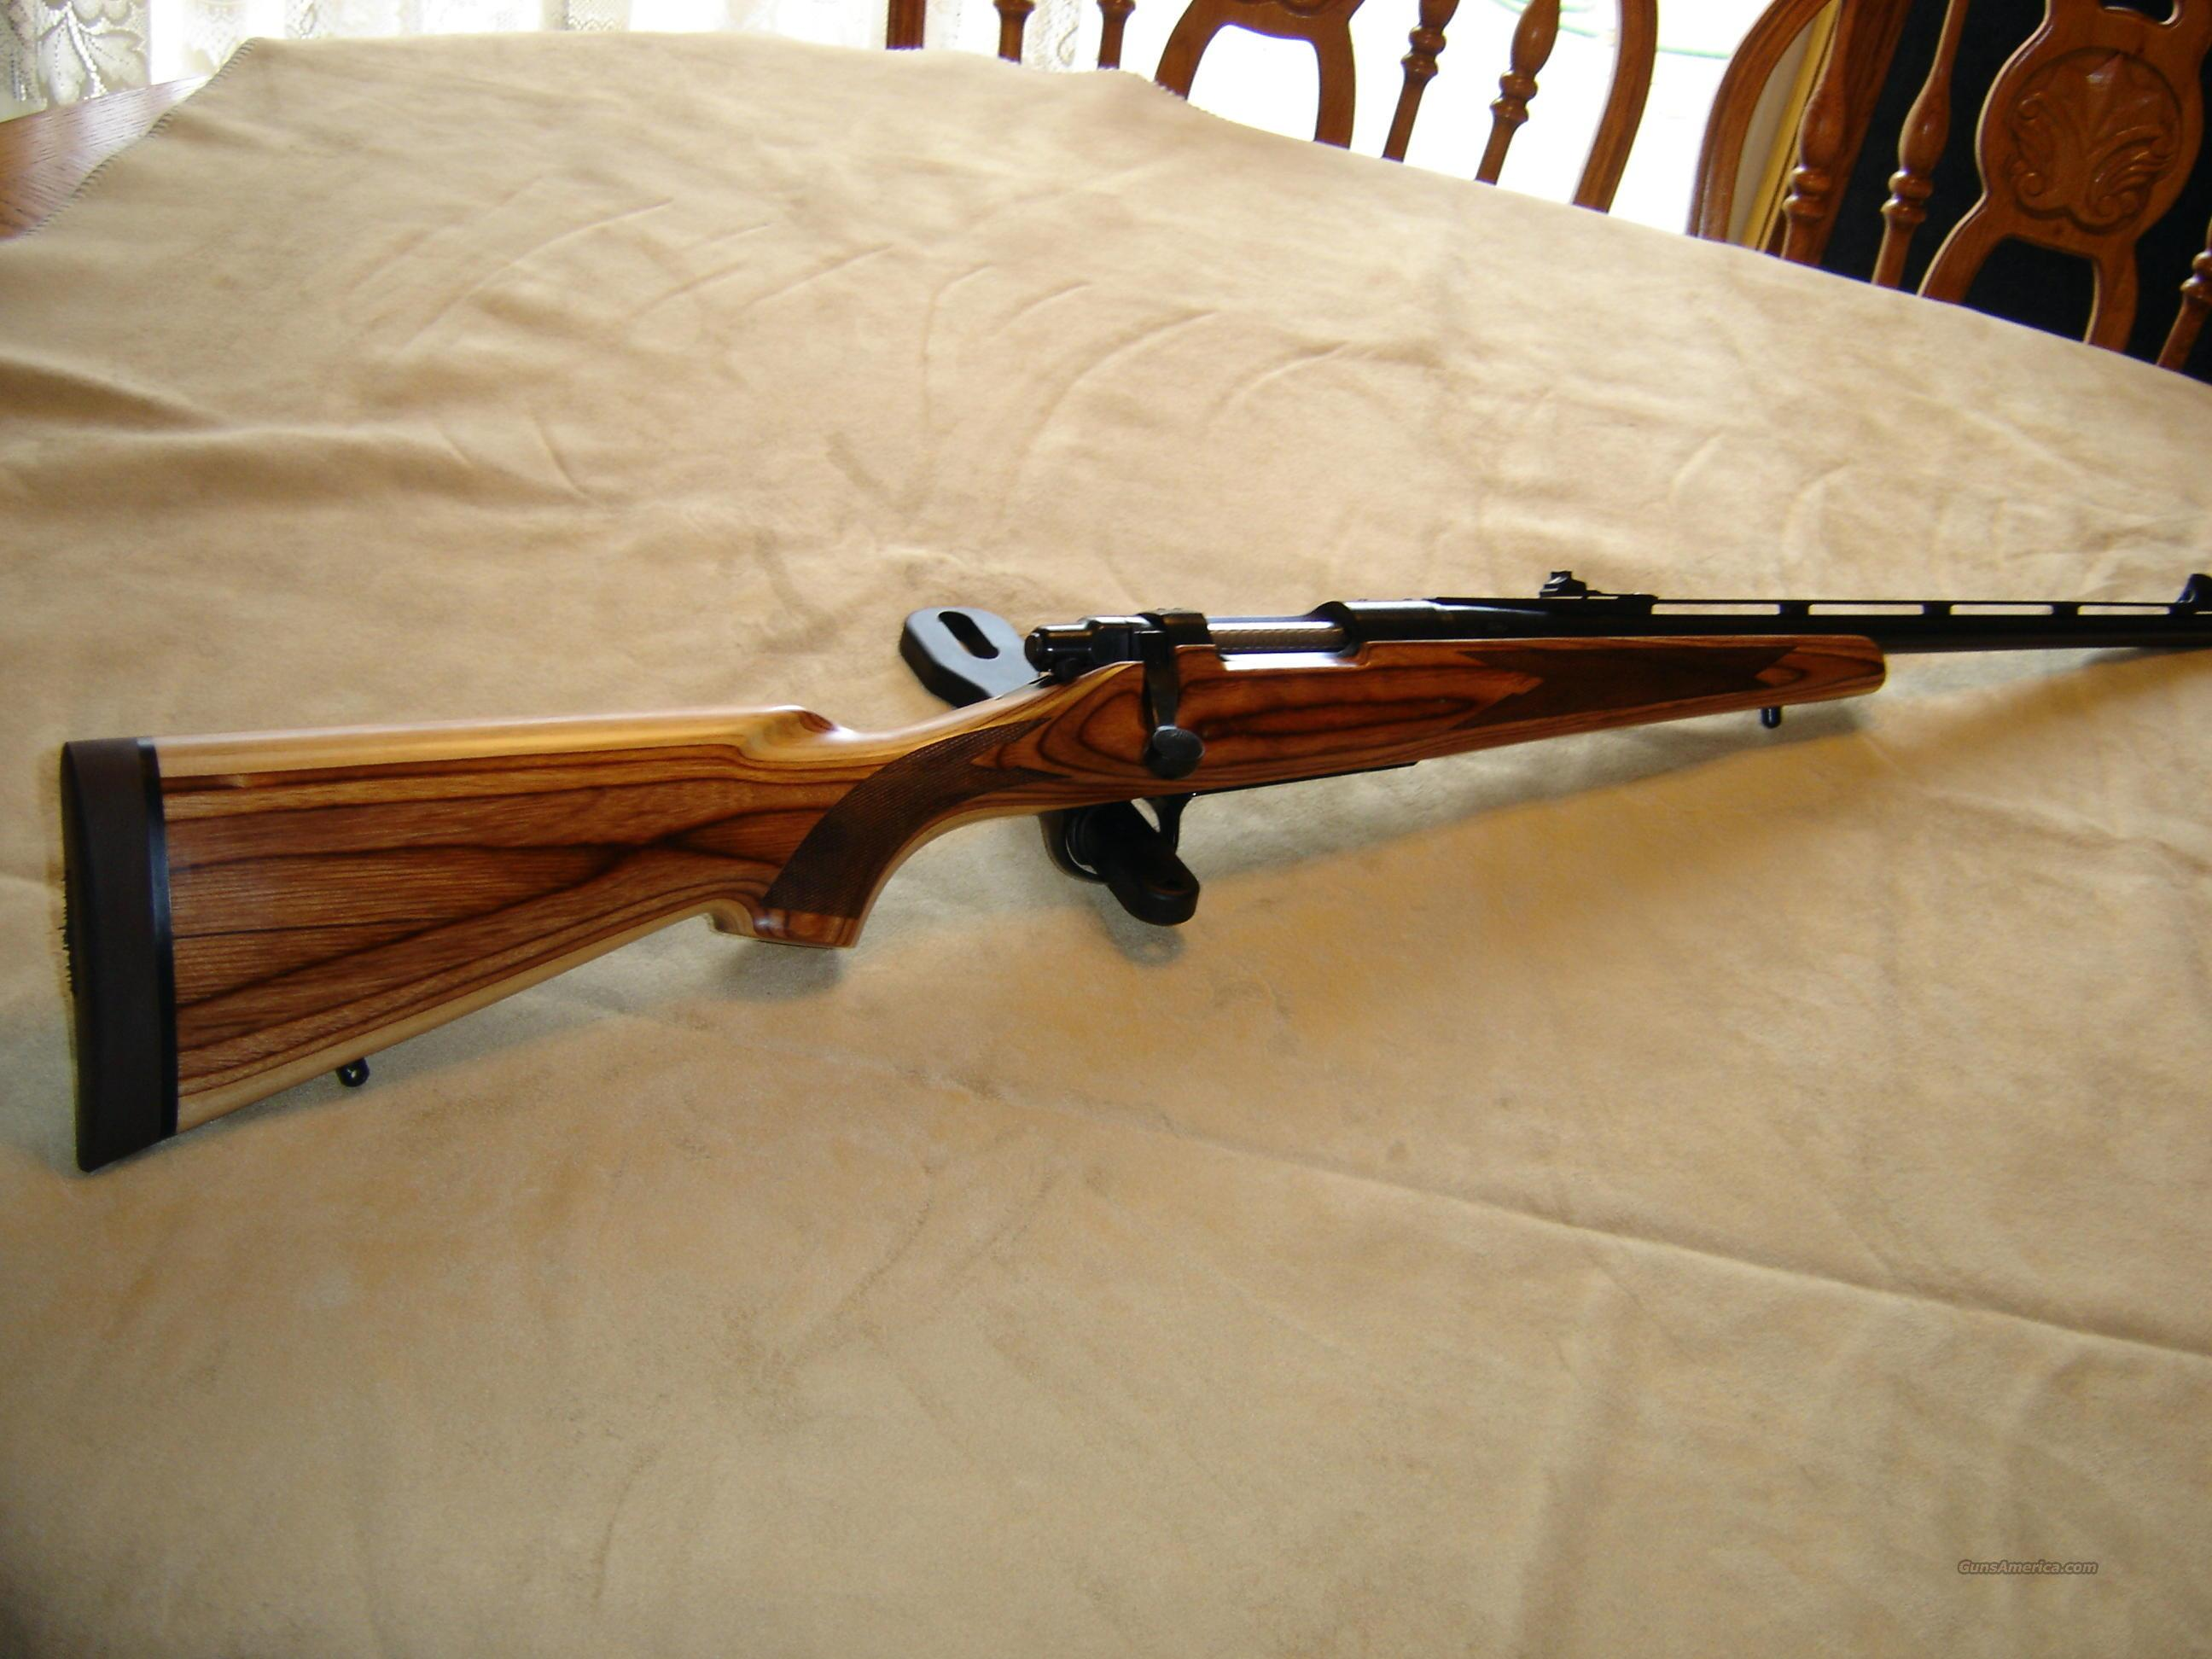 REMINGTON 673 GUIDE GUN - 300 SAUM  Guns > Rifles > Remington Rifles - Modern > Non-Model 700